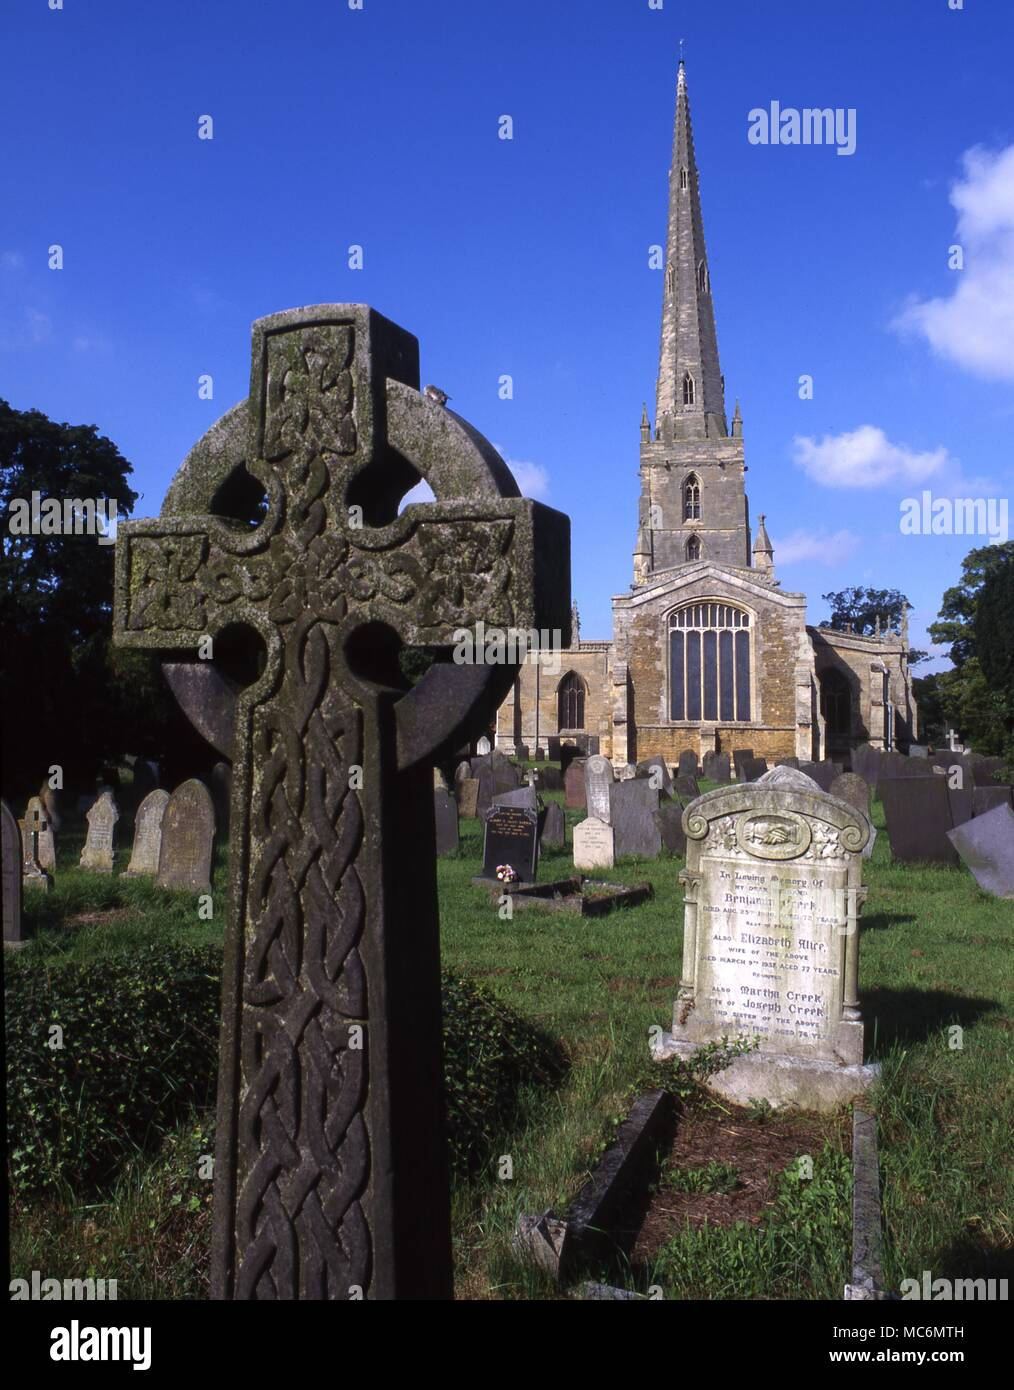 Witchcraft Site Bottesford Church of St Mary the Virgin at Bottesford which houses the witchcraft tomb referent to the Flower family interlude of supposed killing by witchcraft in the sixteenth century - Stock Image